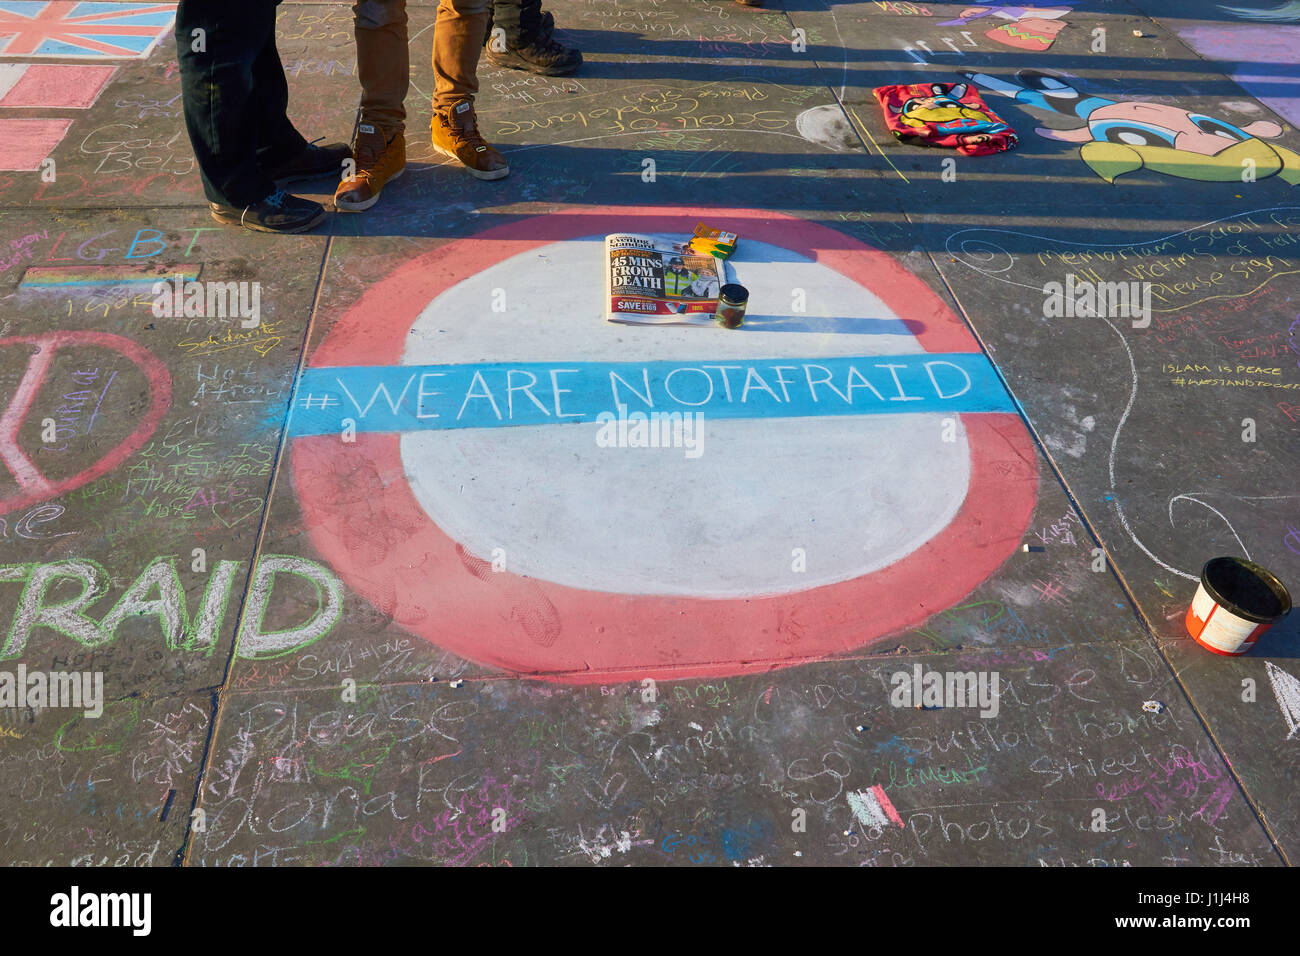 We are not afraid pavement street art after the Westminster terrorist attack, Trafalgar Square, London, England - Stock Image